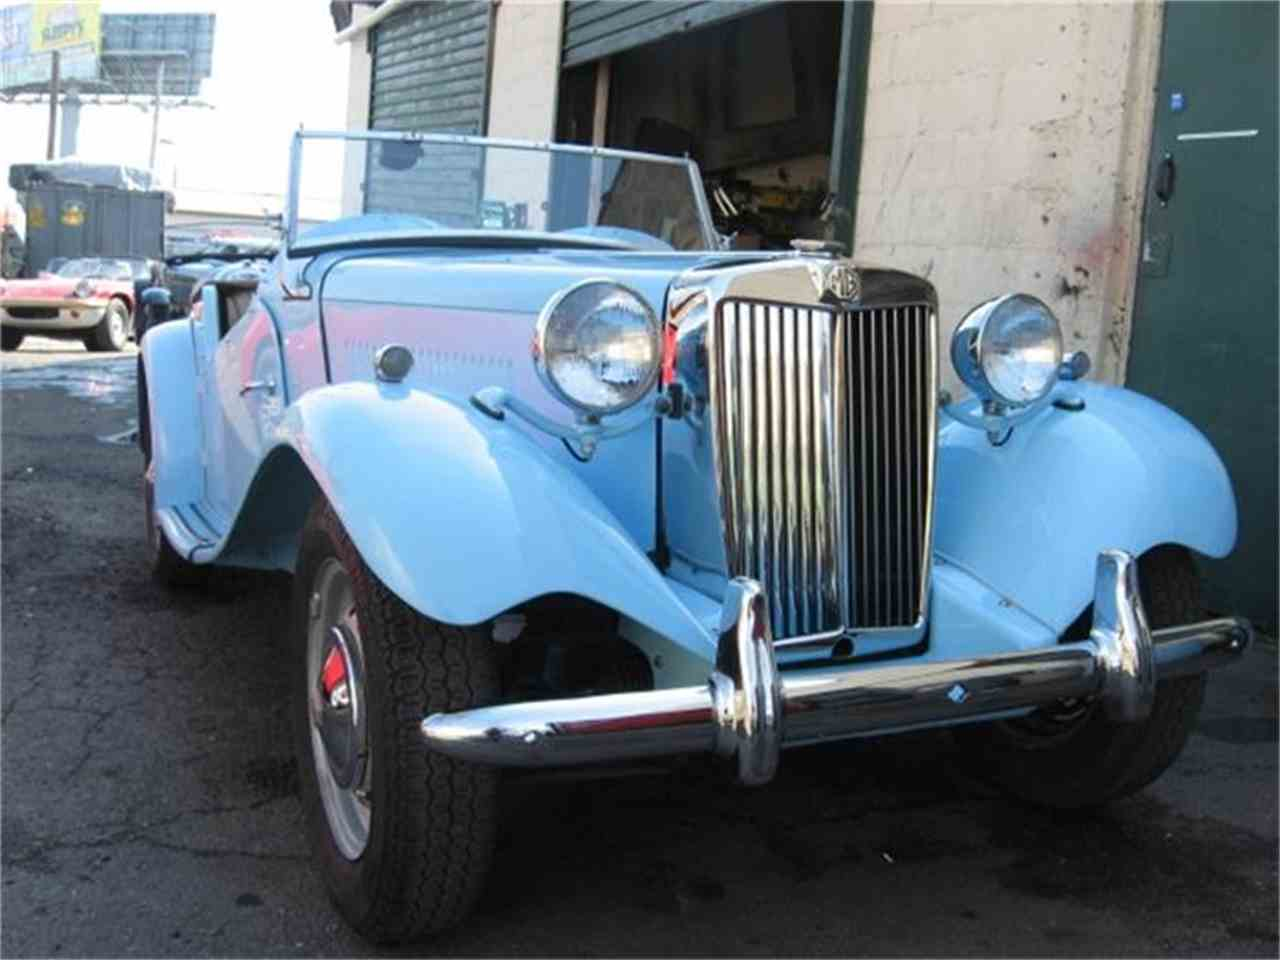 Large Picture of Classic 1950 MG TD located in Stratford Connecticut - $21,000.00 - ACER